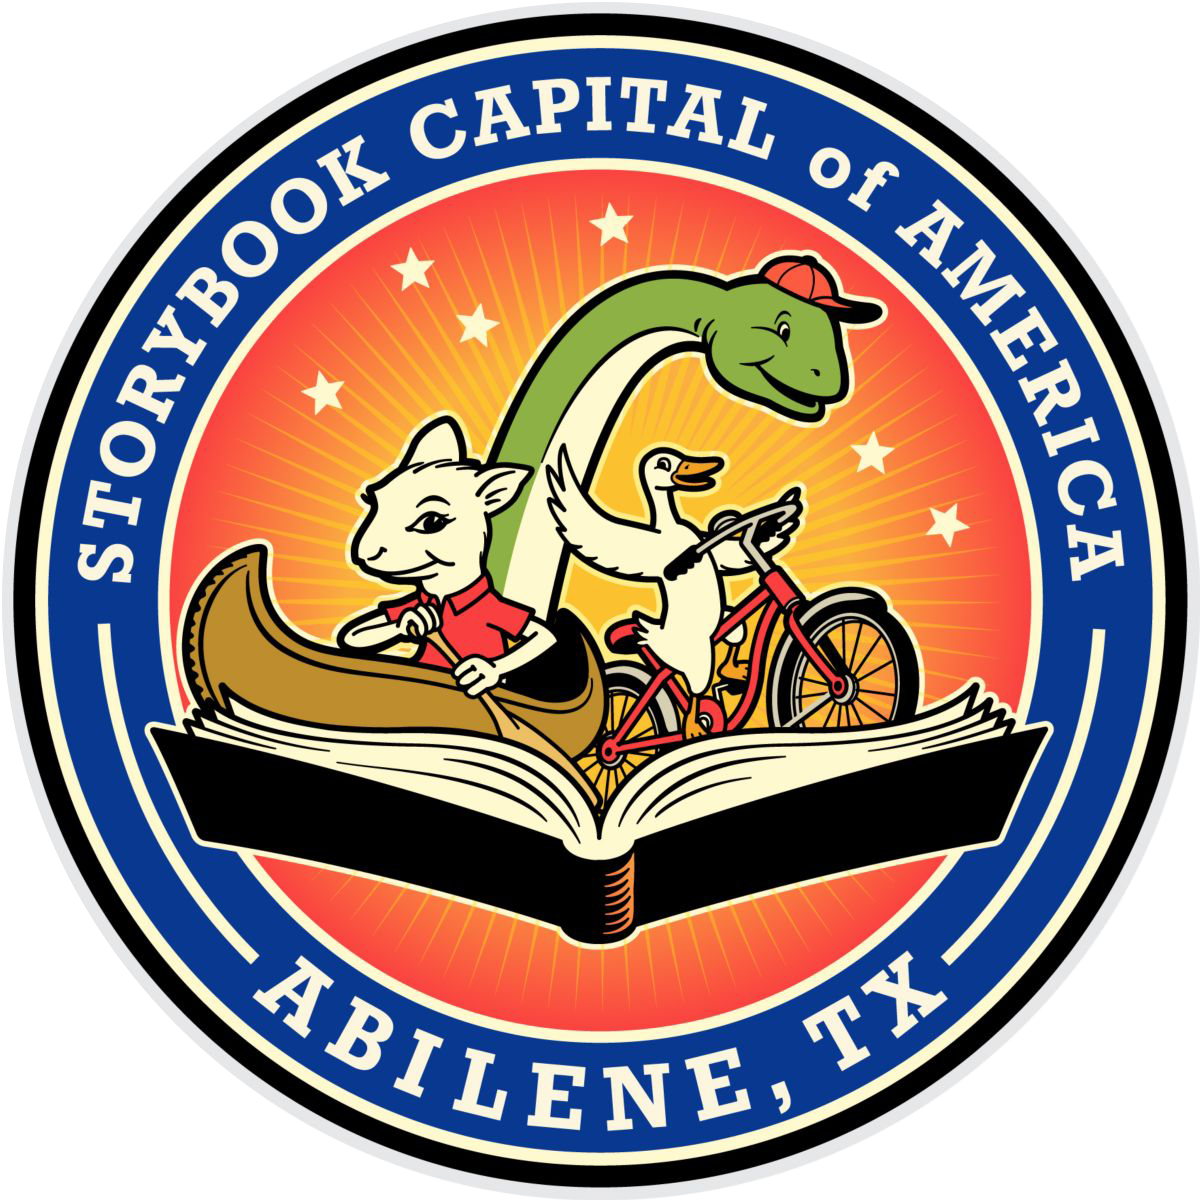 storybook capital of america_fullcolor_outlined.png